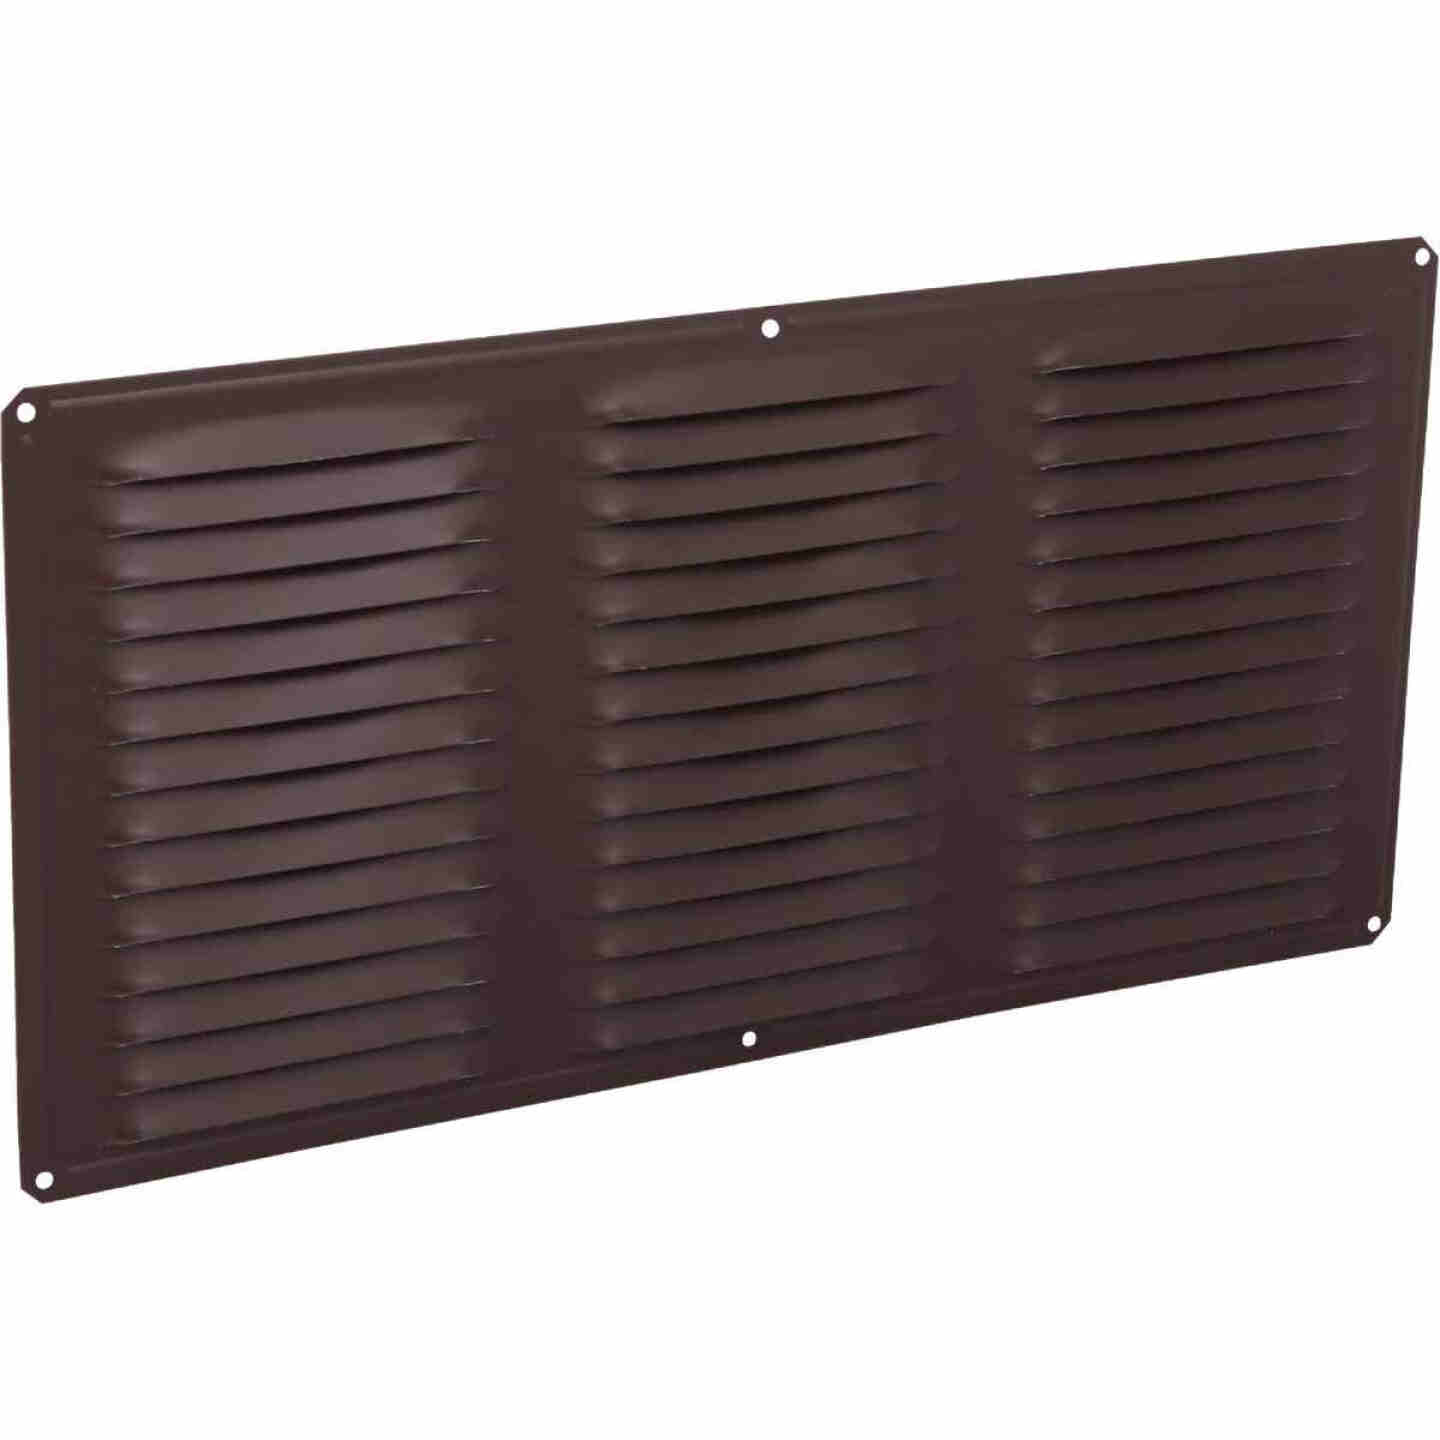 Air Vent 16 In. x 8 In. Brown Aluminum Under Eave Vent Image 1